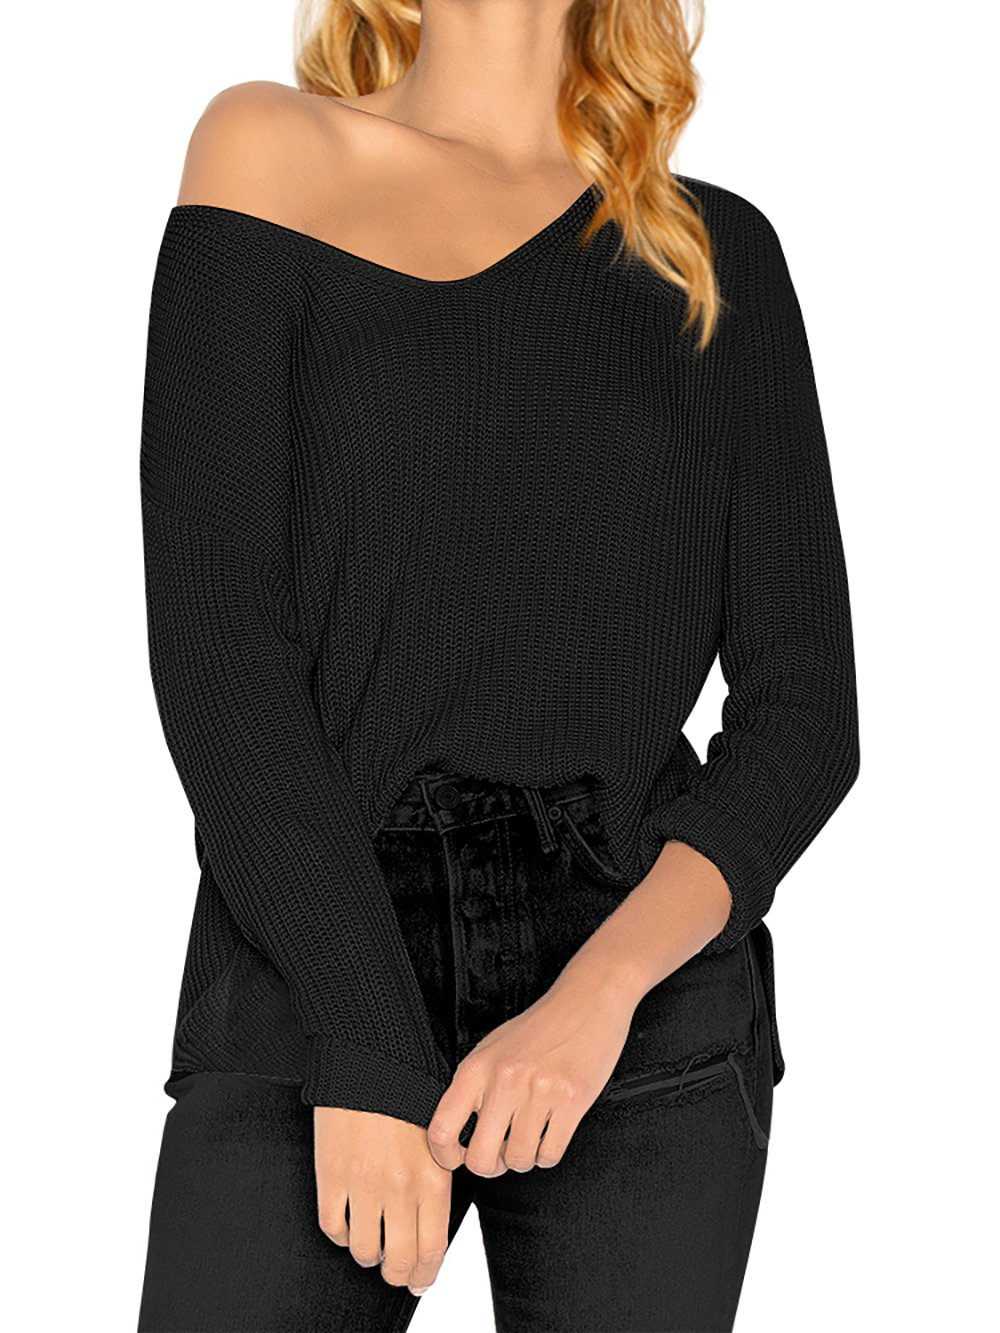 HENCY Women's Long Sleeve Knitted Pullover Loose V Neck Sweater Casual Jumper Tops Black